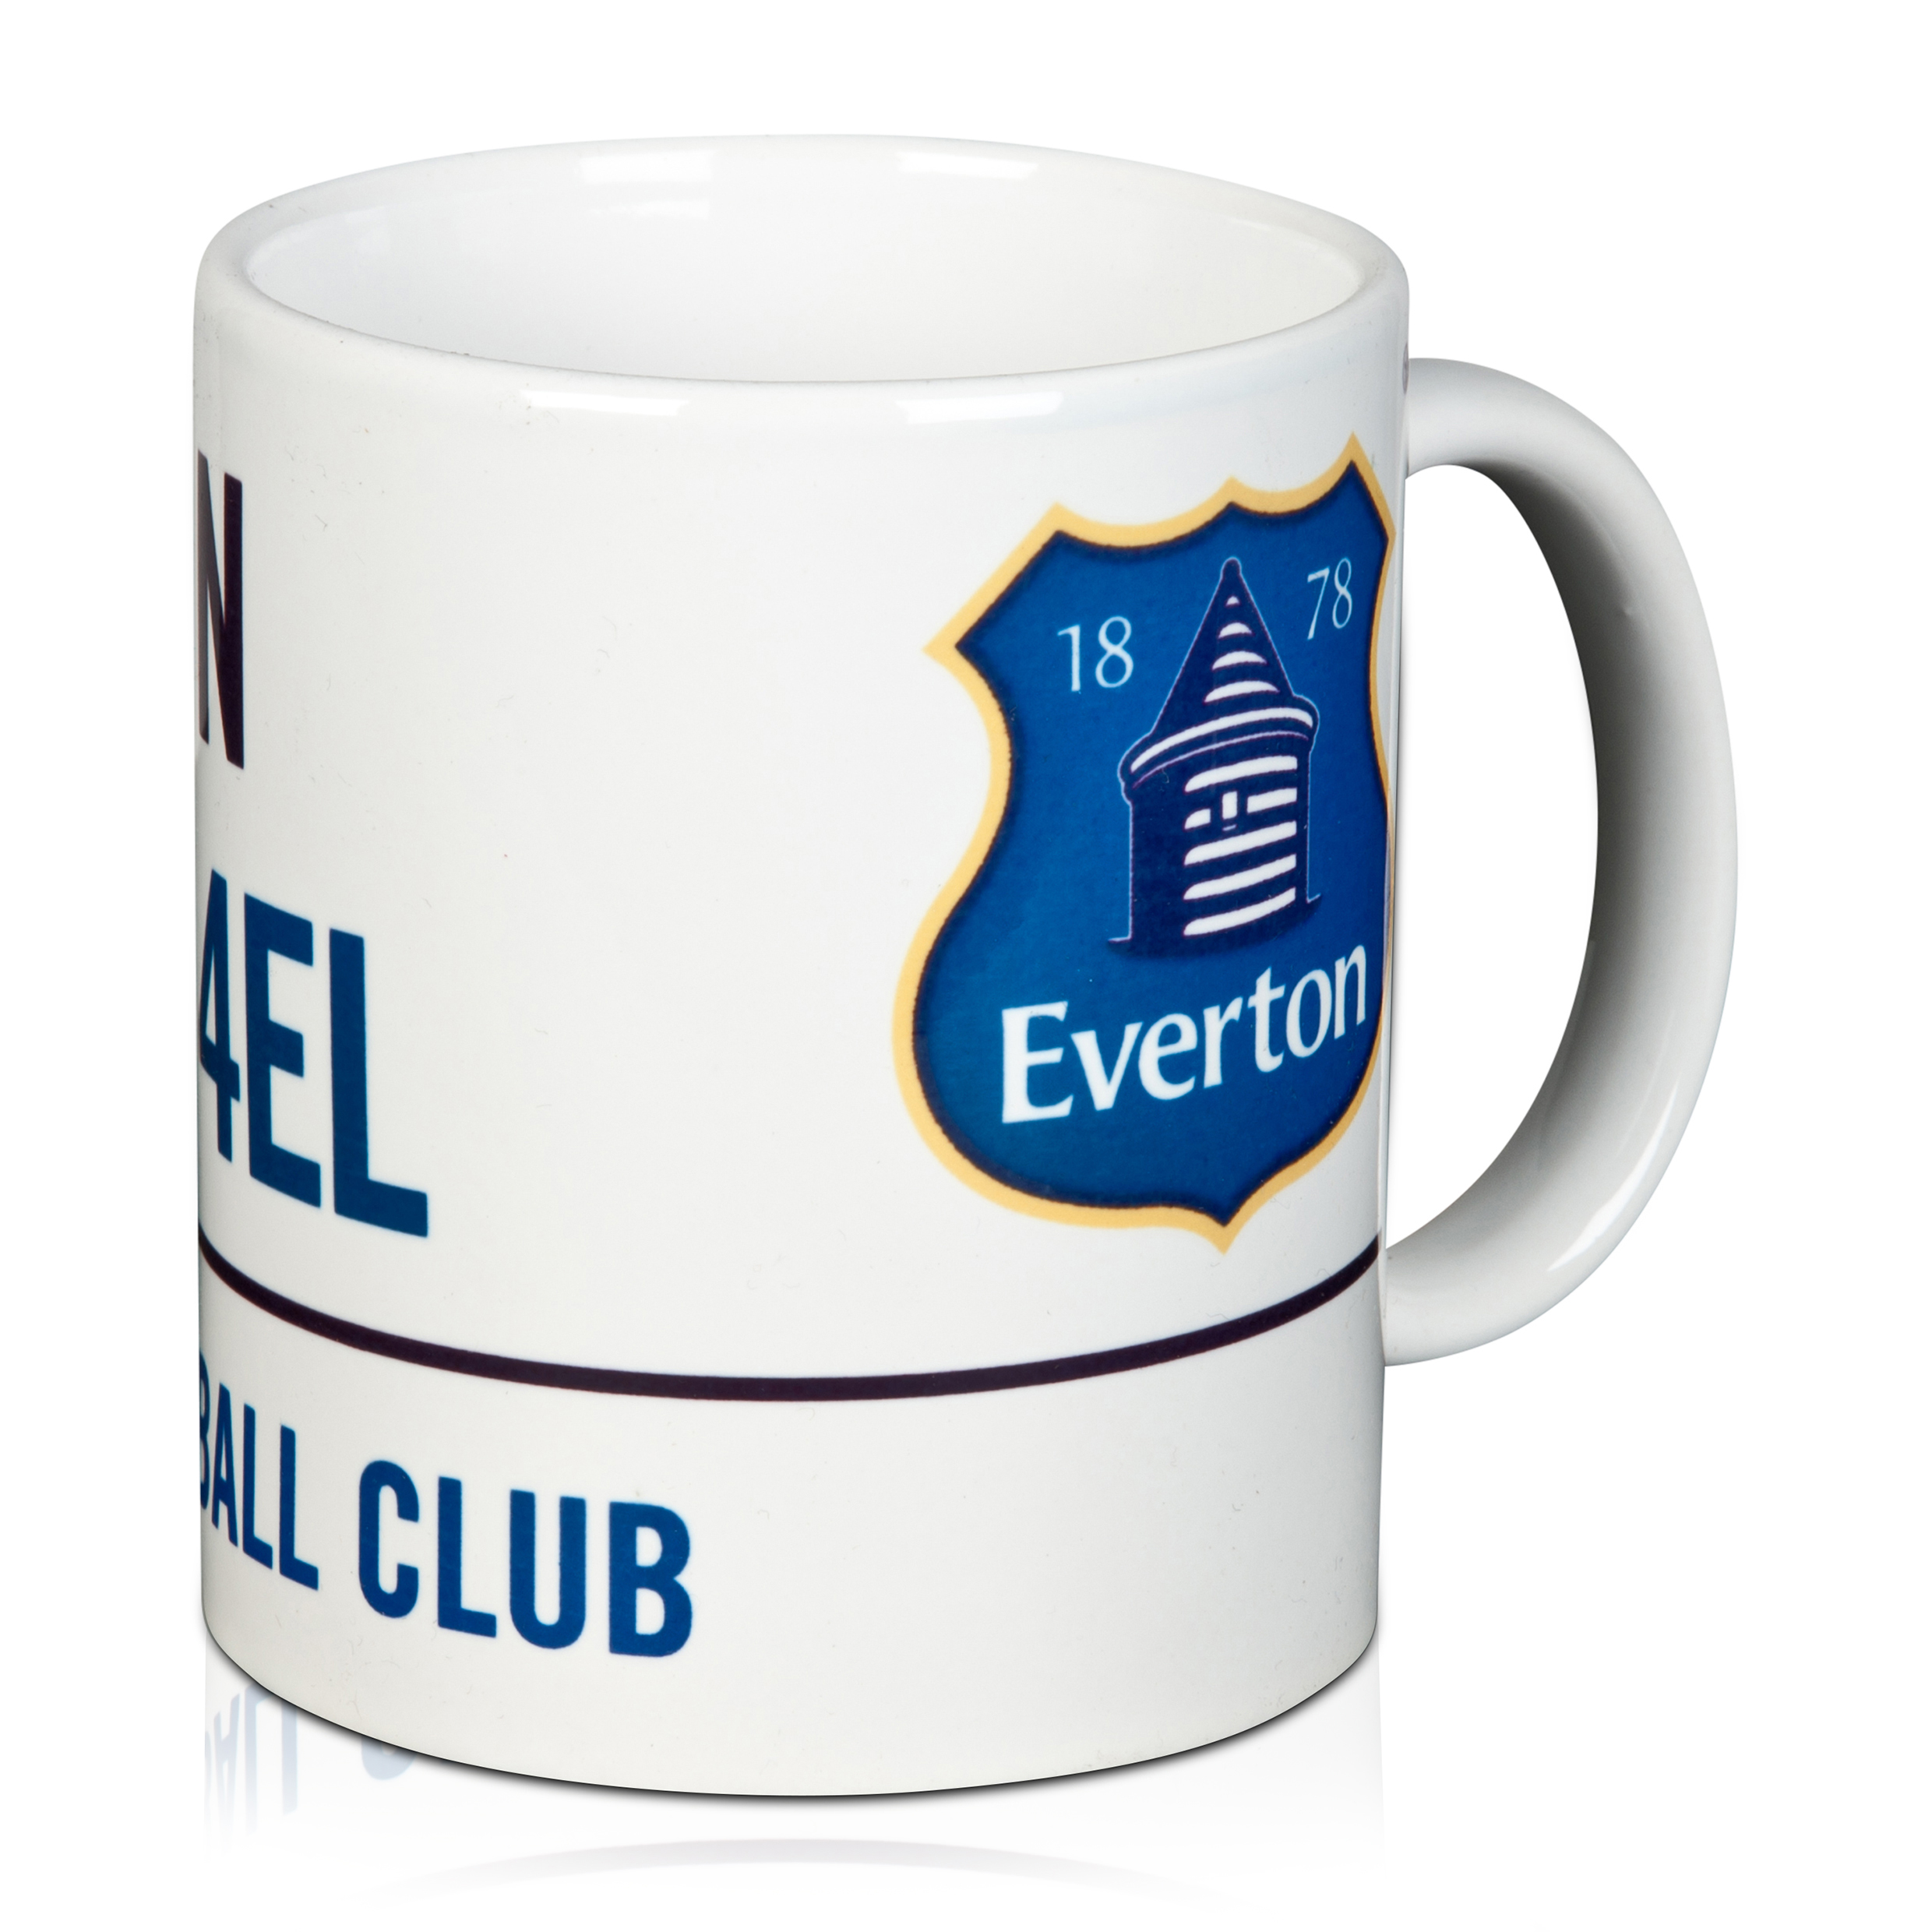 Everton Street Sign Mug